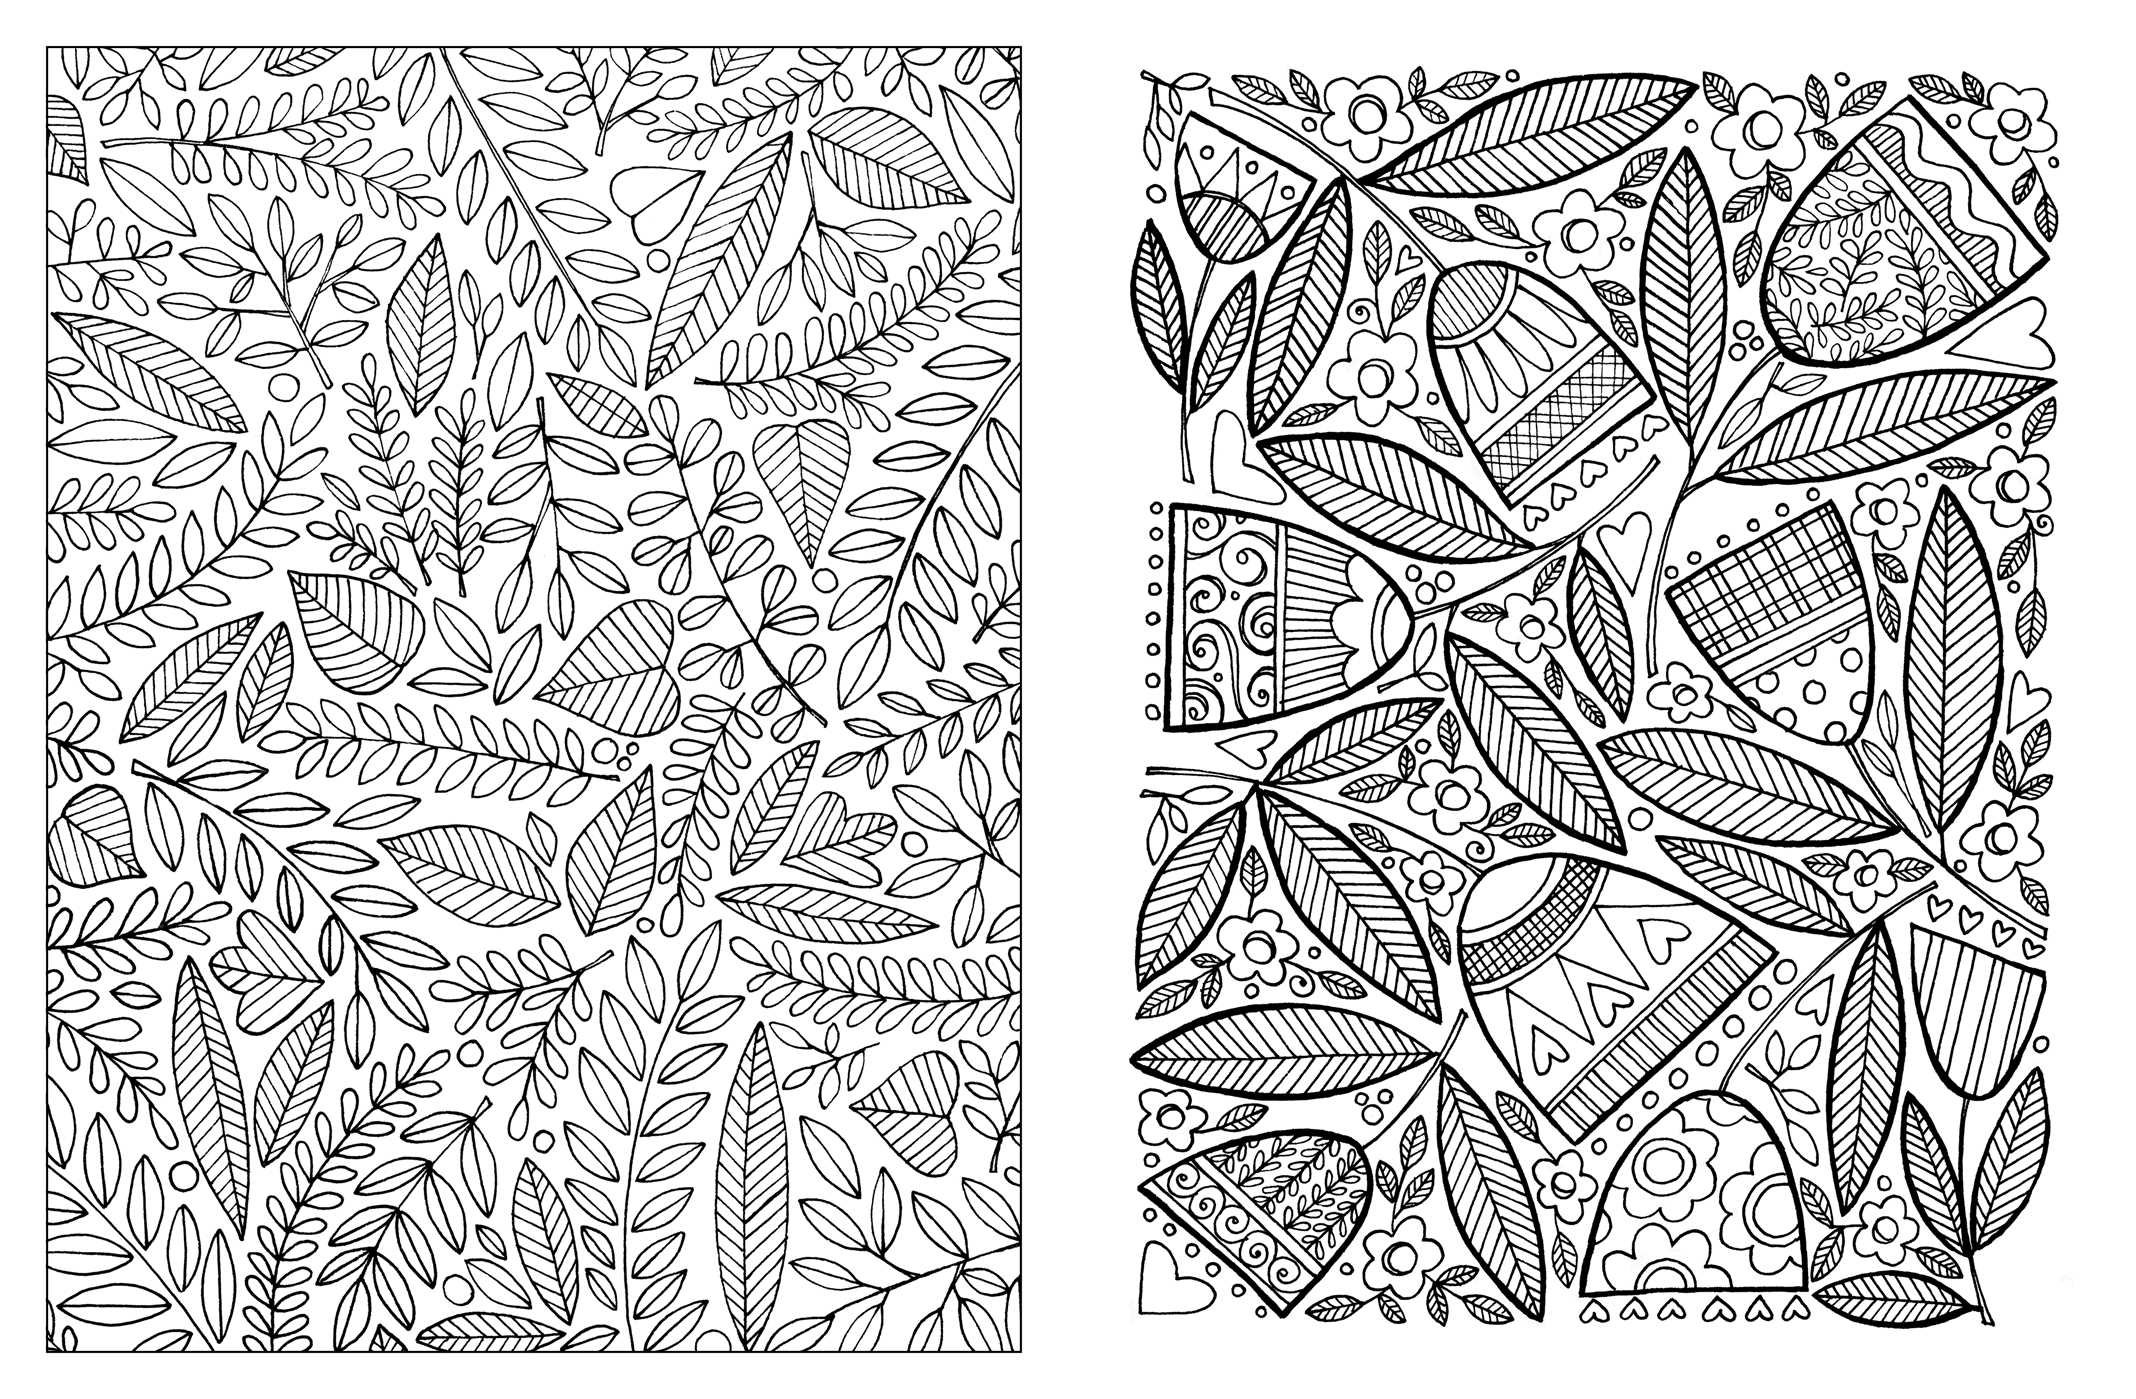 Posh coloring book soothing designs for fun and relaxation - Amazon Com Posh Adult Coloring Book Inspired Garden Soothing Designs For Fun Relaxation Posh Coloring Books 9781449478360 Susan Black Books